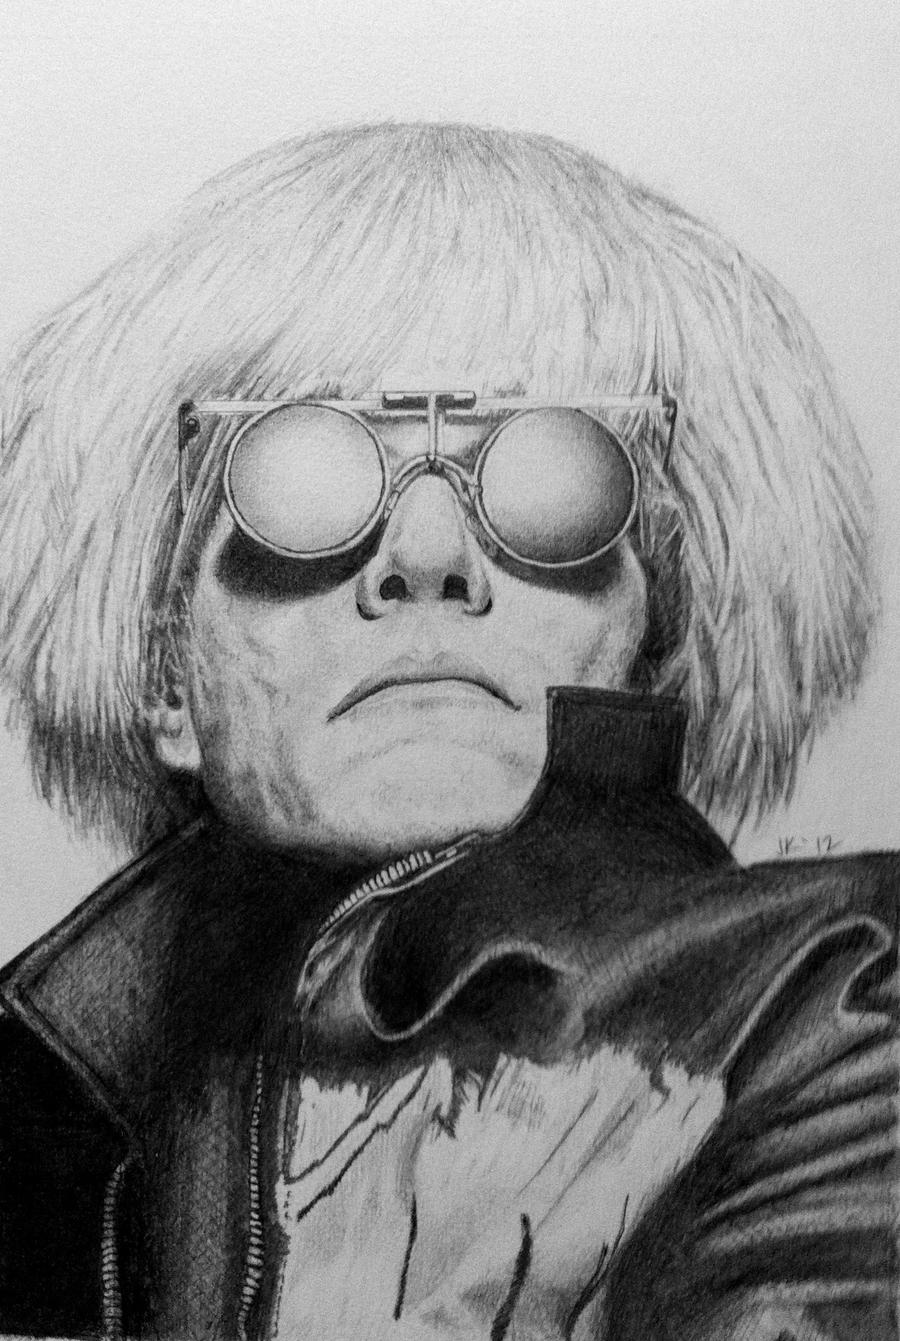 15 minute of fame, Andy Warhol by JaneyArt